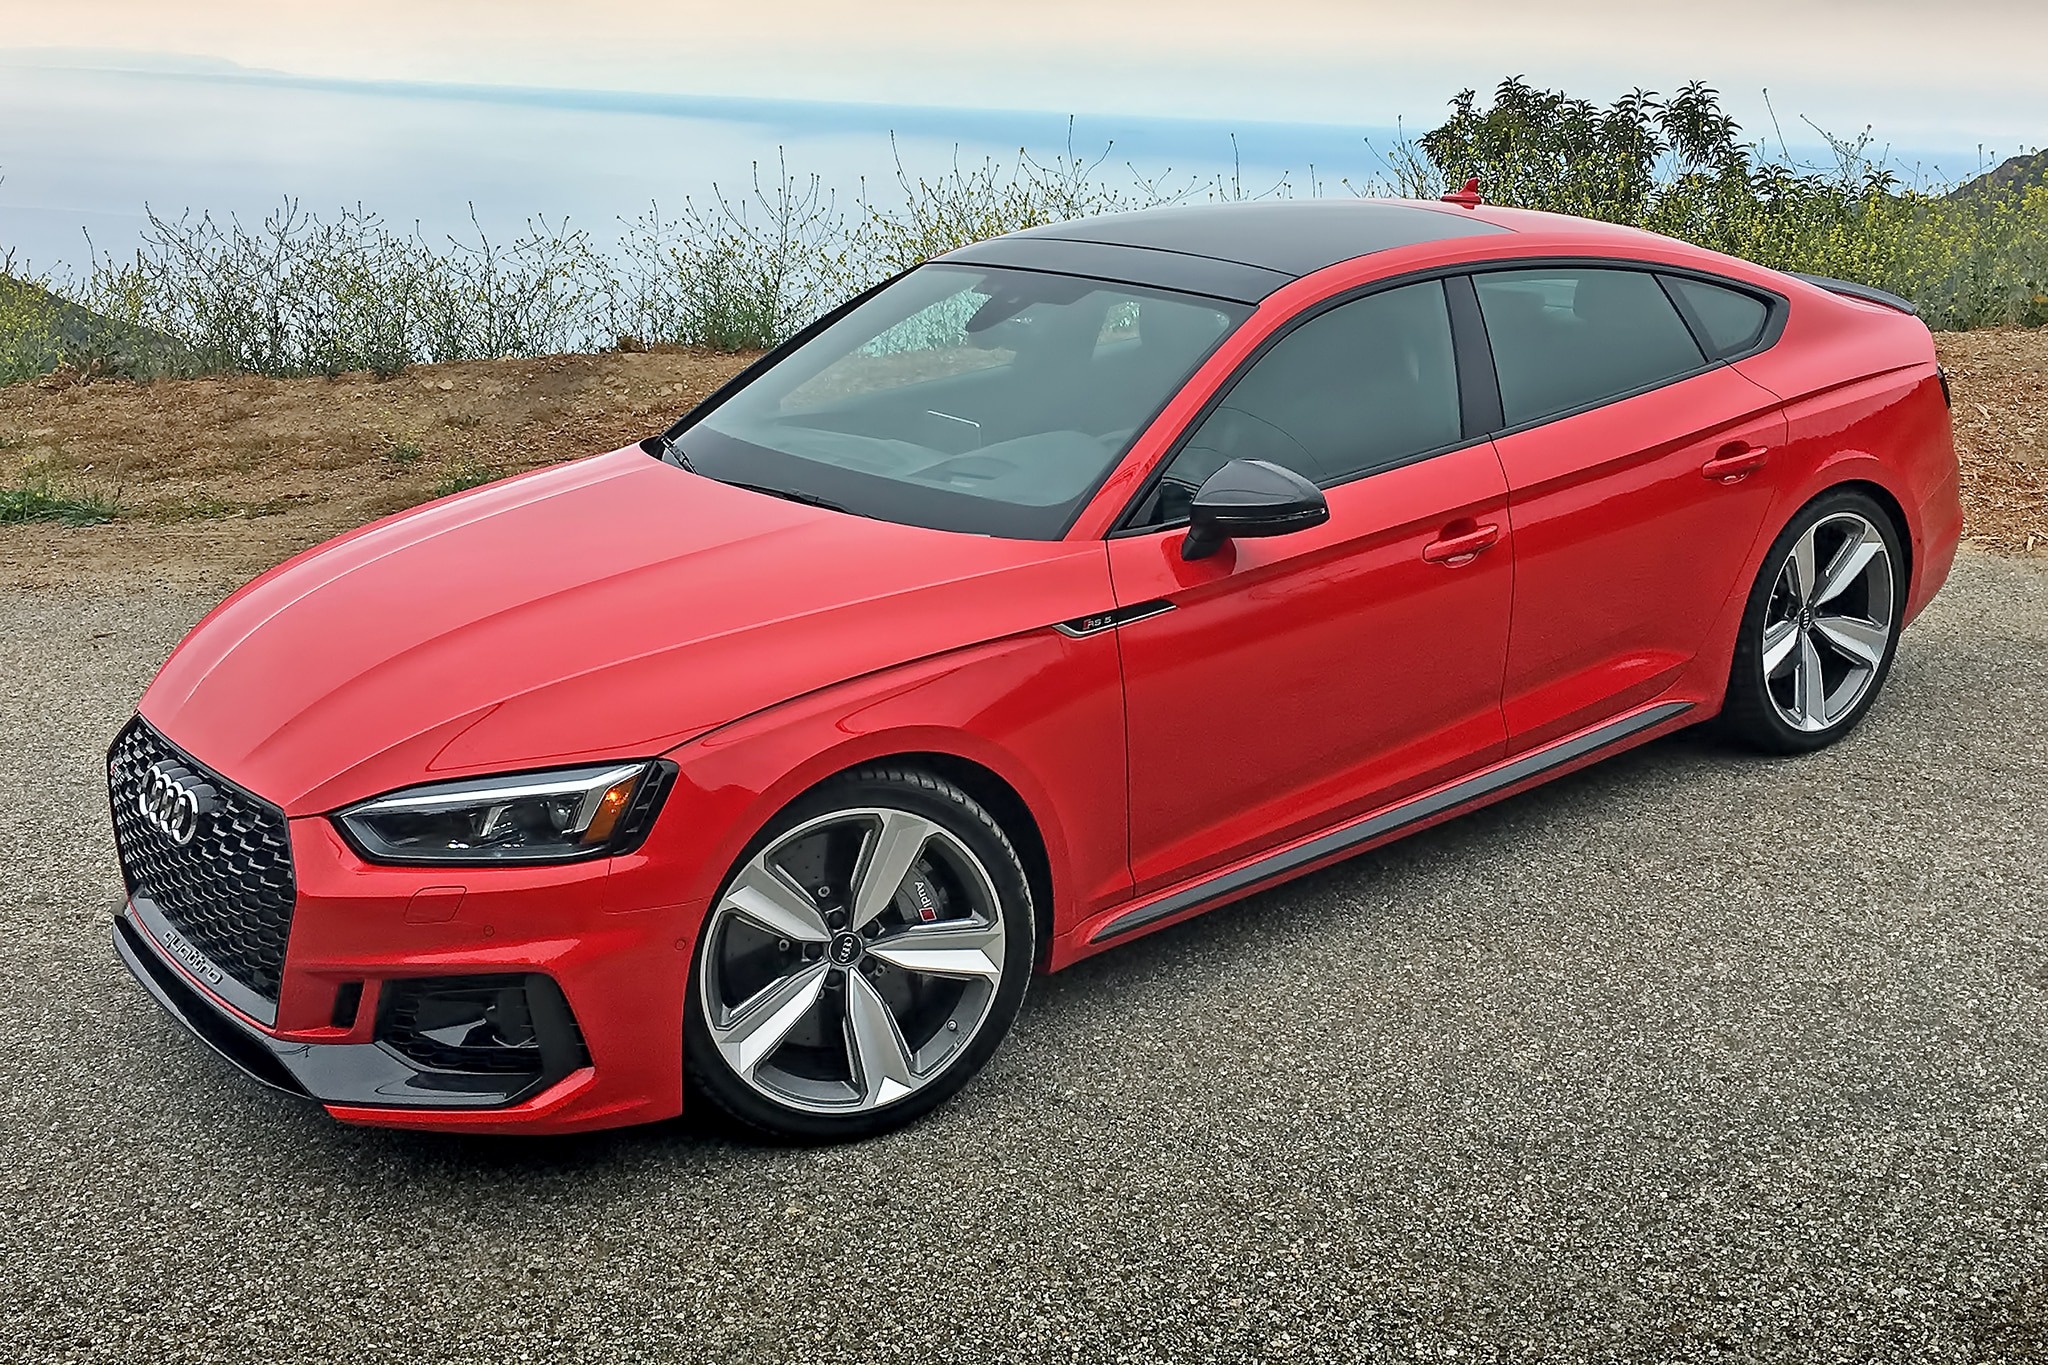 2019 audi rs5 sportback review  an absolute monster